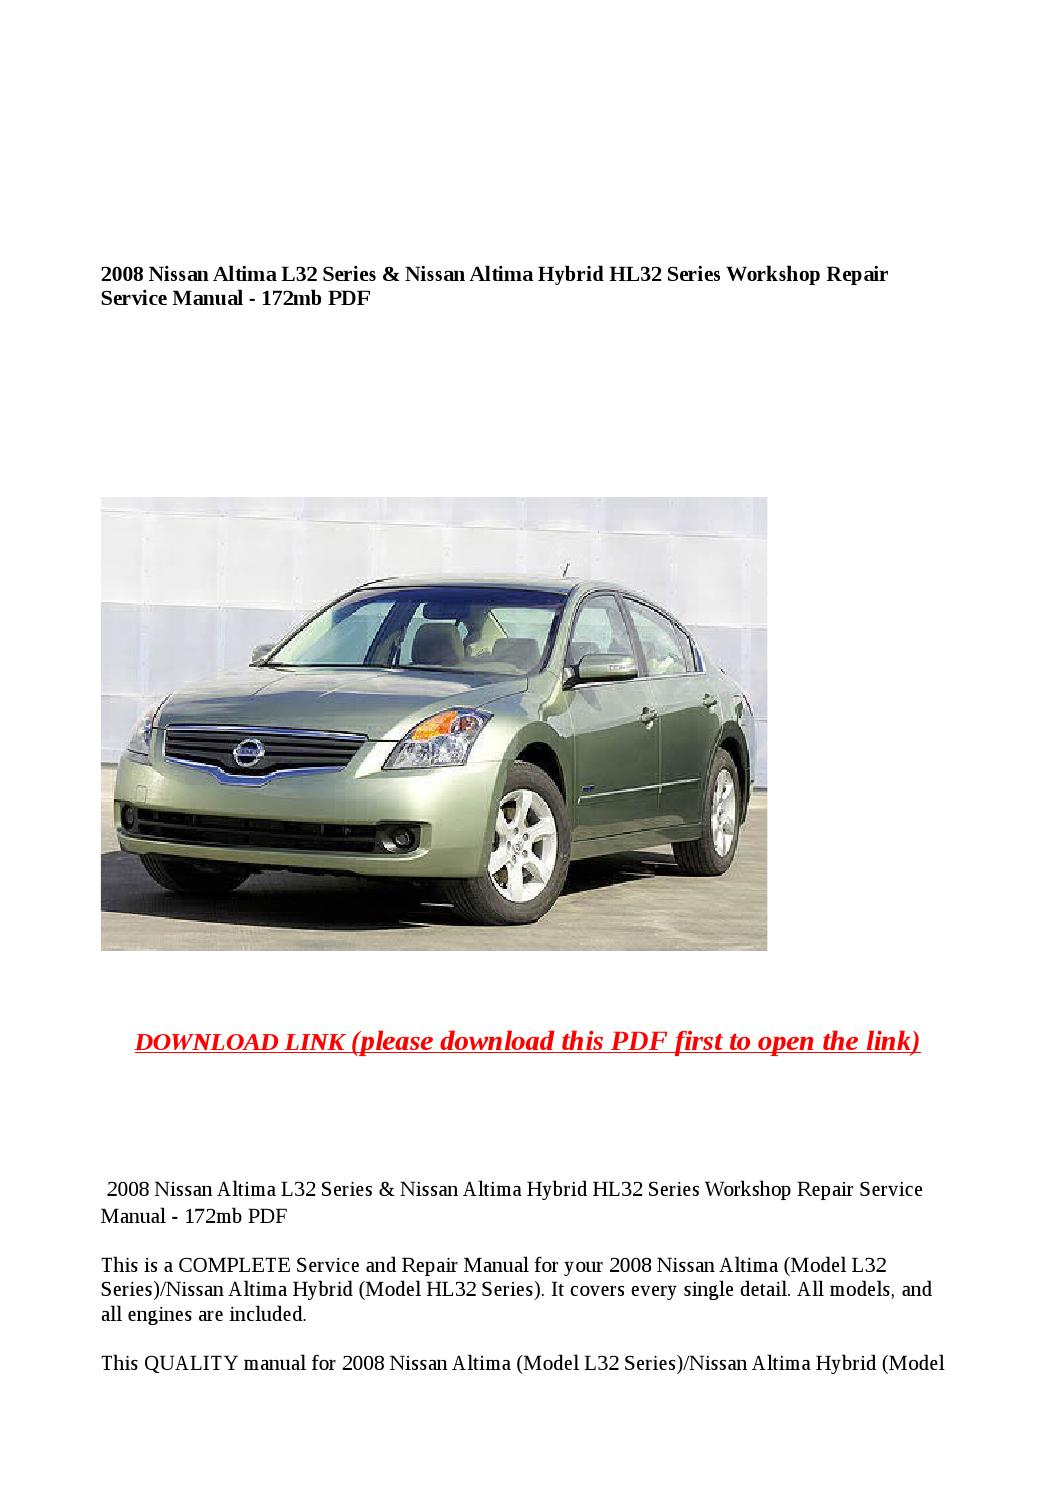 2007 Nissan Altima - Owner s Manual (344 pages)